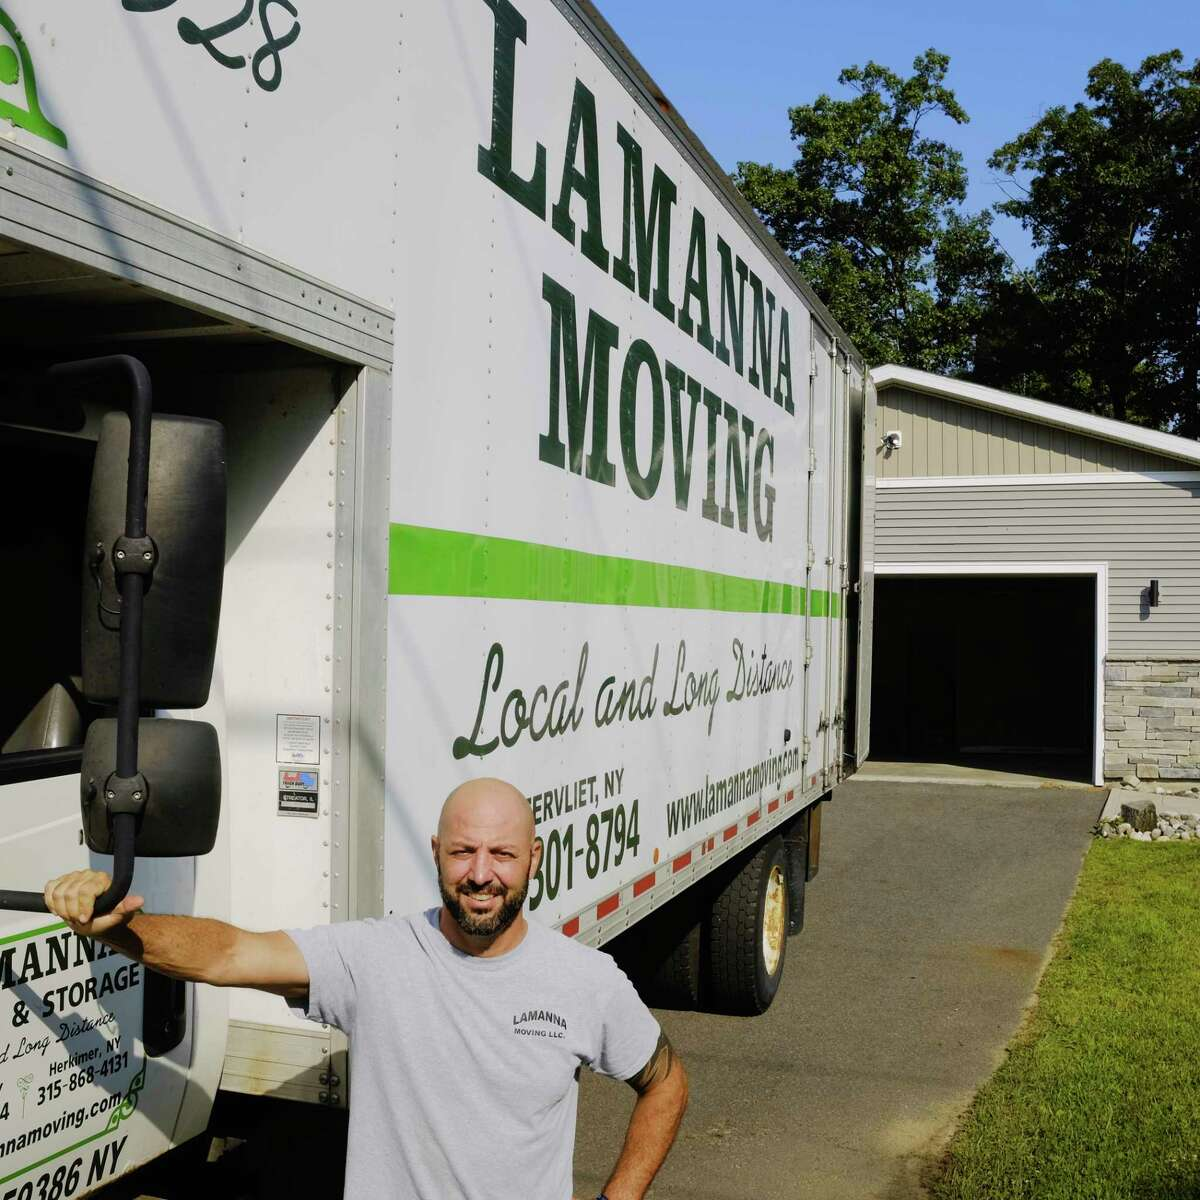 Steve Lamanna, owner of Lamanna Moving, poses outside a client's home on Monday, Aug. 24, 2020, in Halfmoon, N.Y. (Paul Buckowski/Times Union)